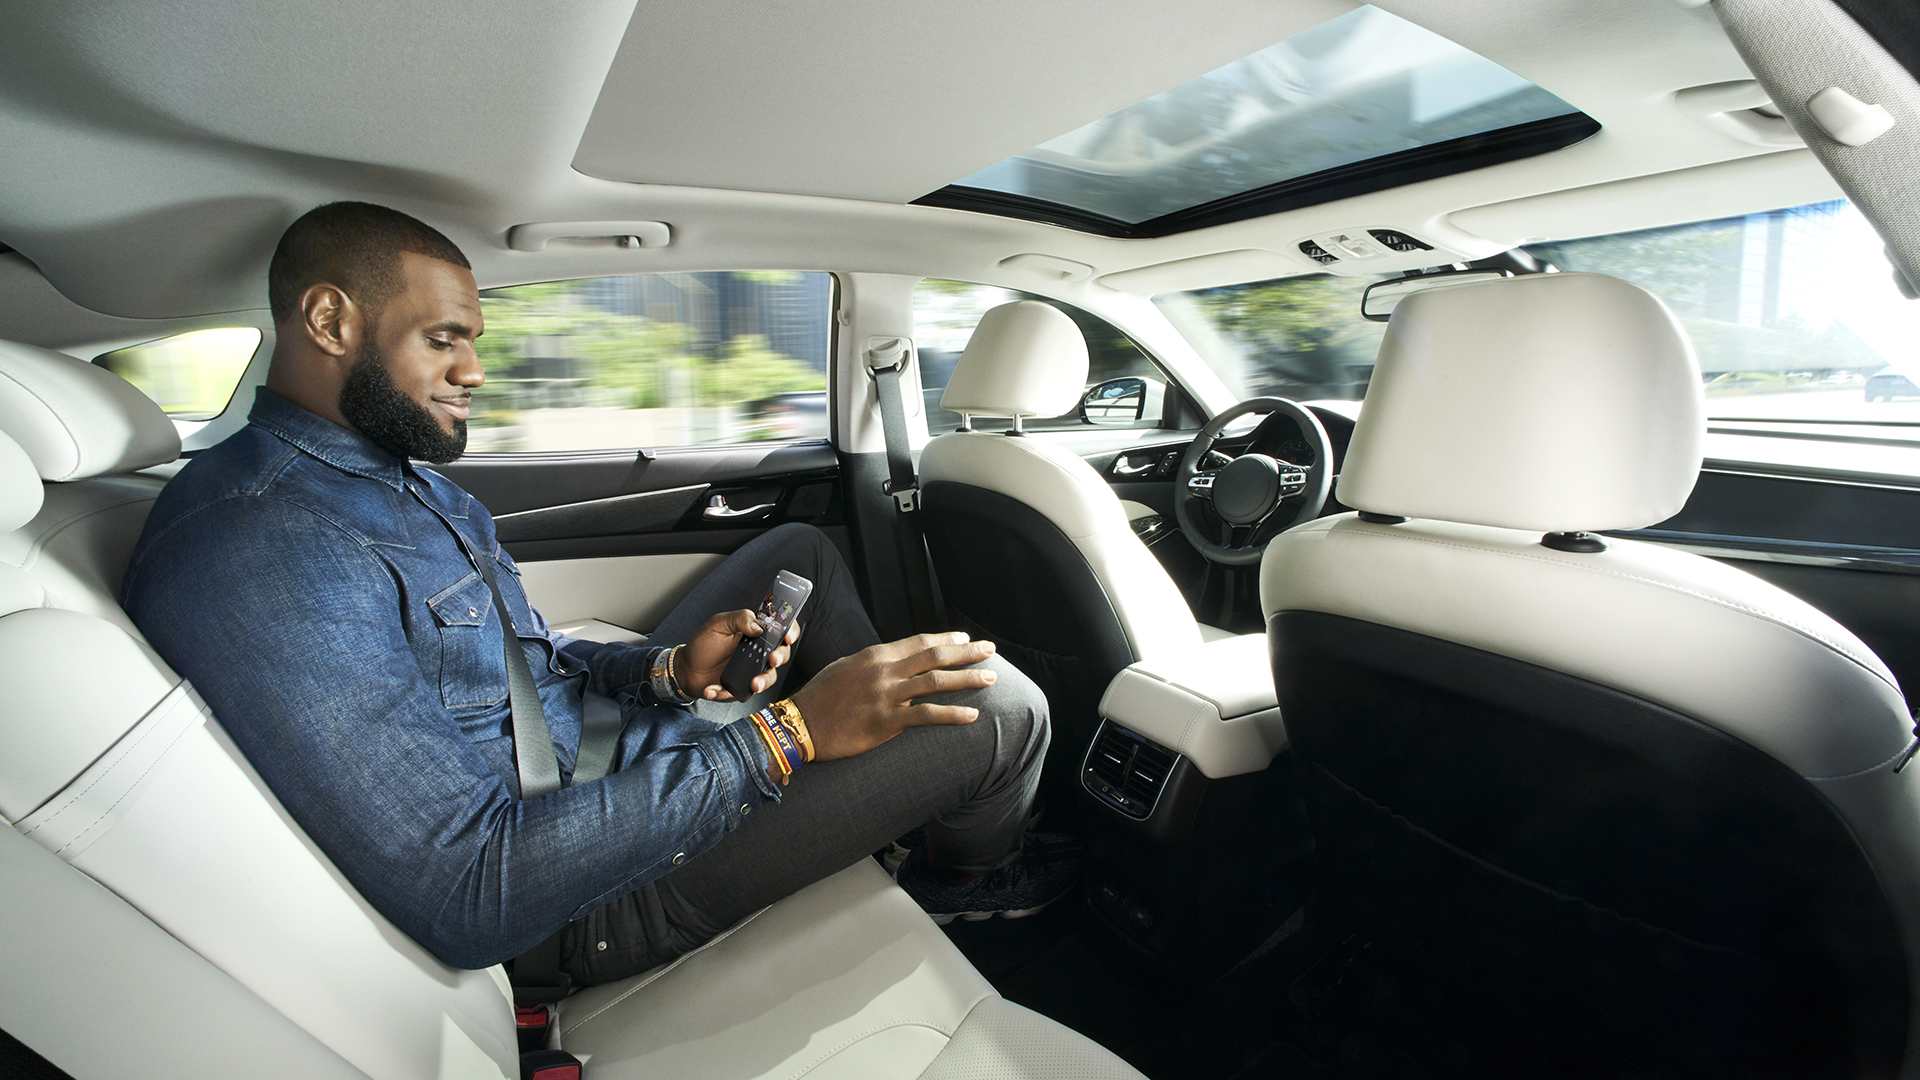 LeBron James Wants to Convince You Self-Driving Cars Won't Kill You